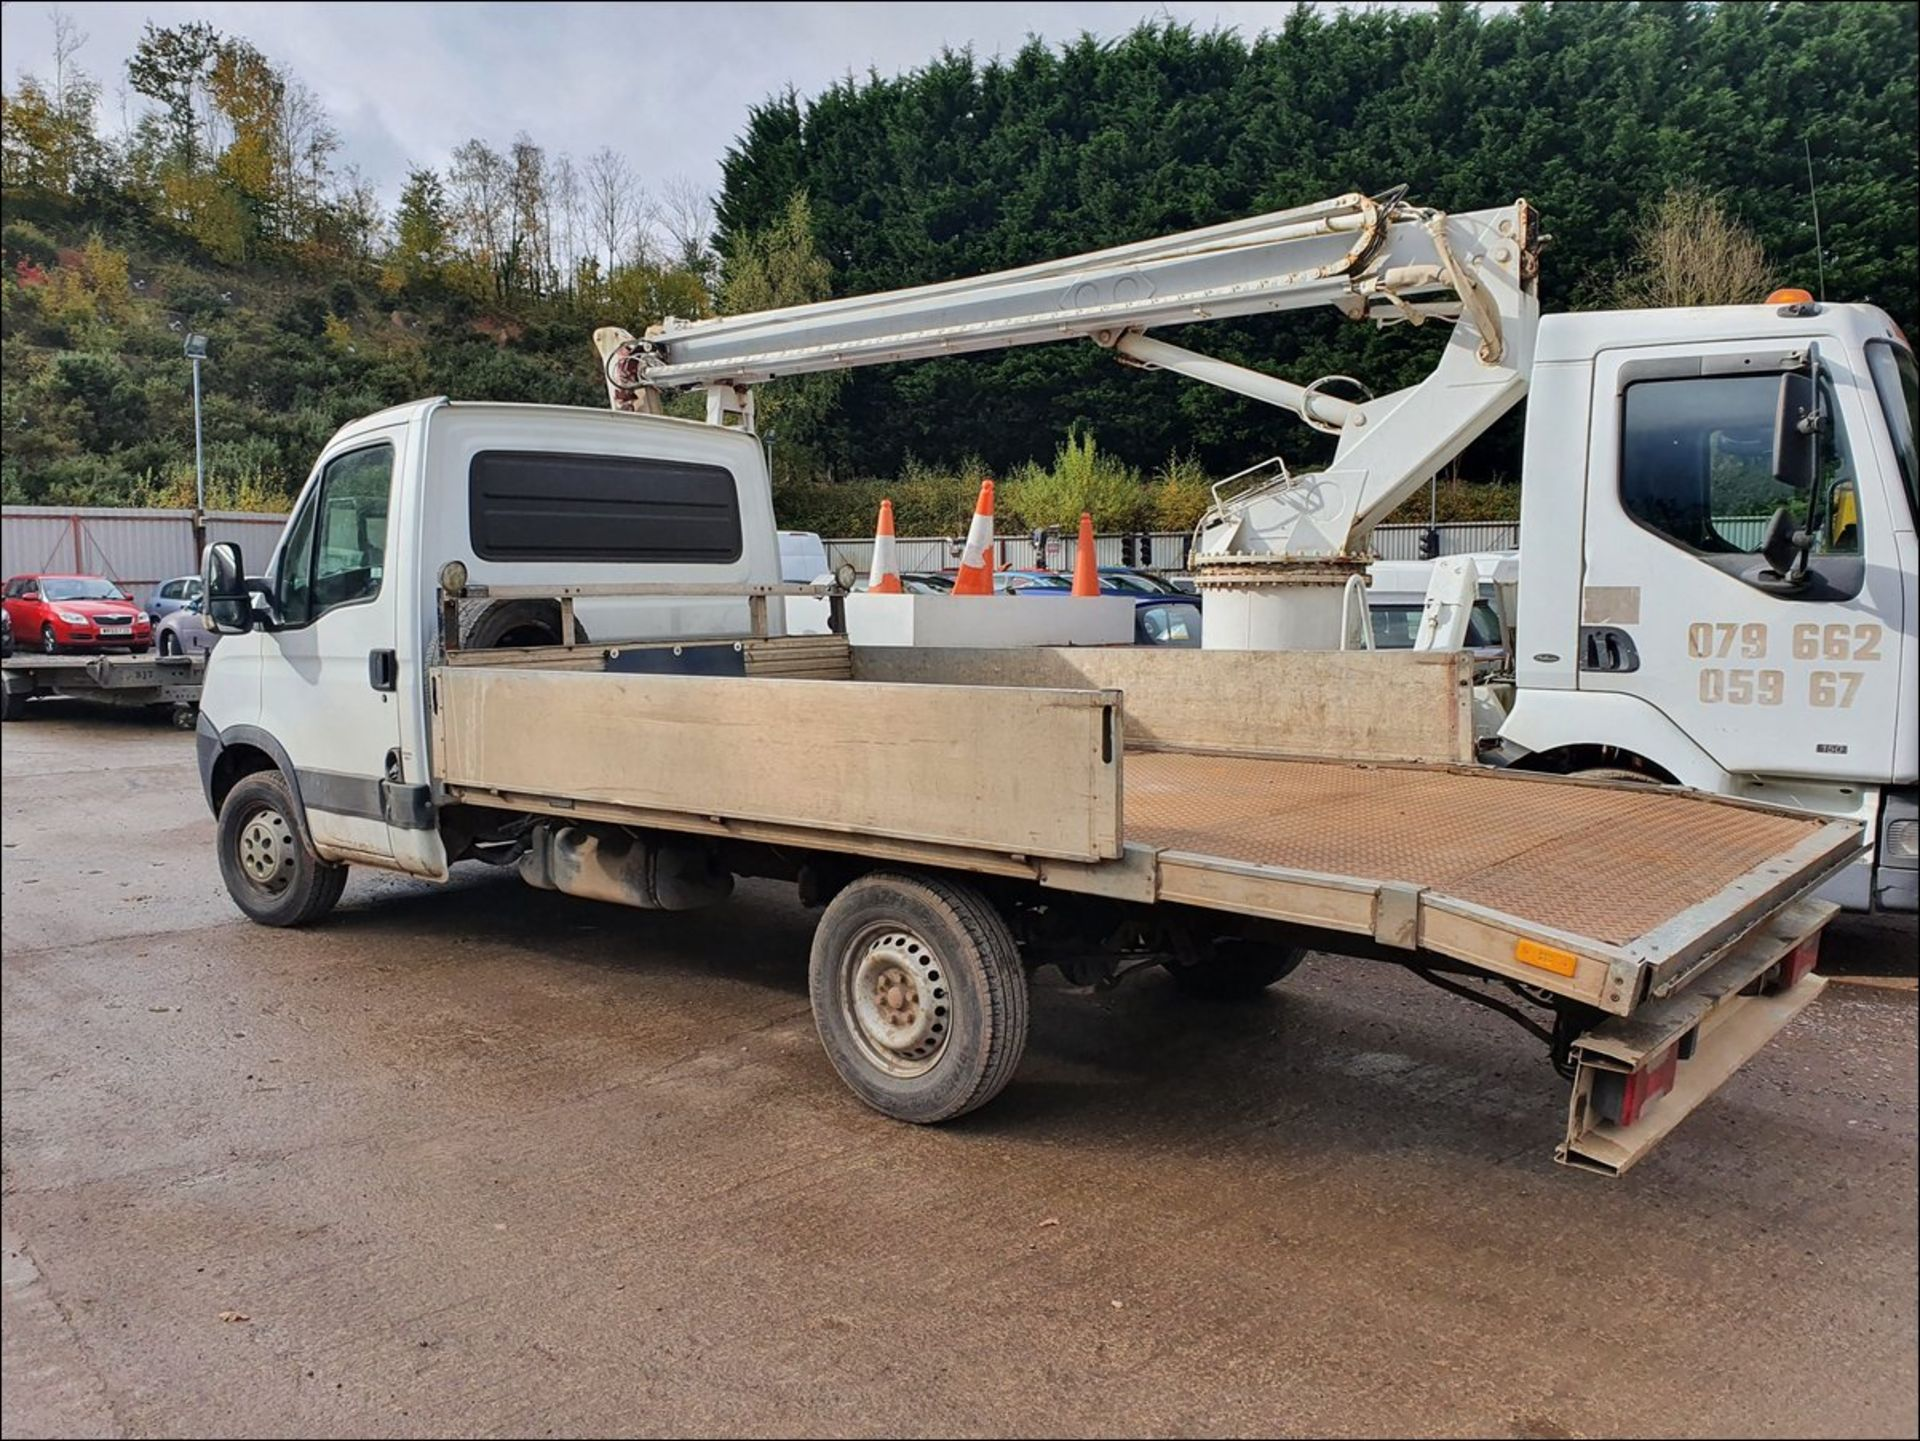 11/61 IVECO DAILY 35S11 MWB - 2287cc 2dr Flat Bed (White/blue, 194k) - Image 4 of 9